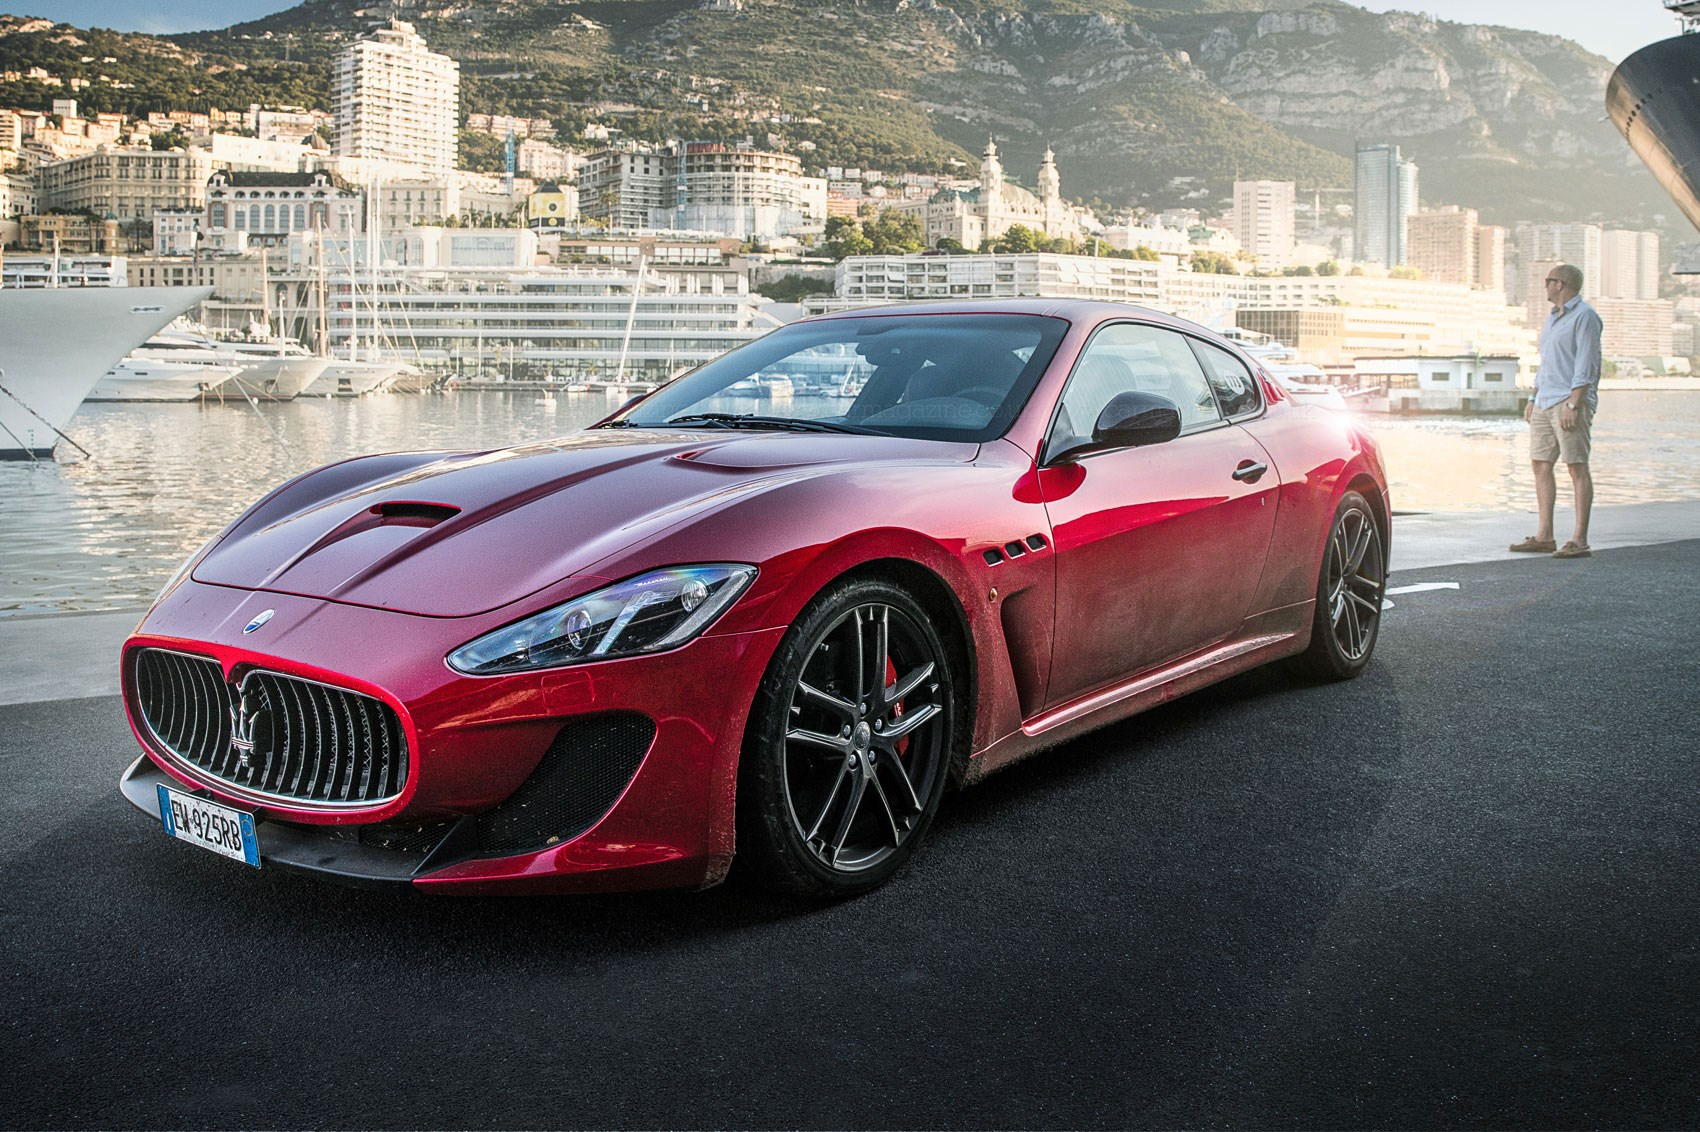 Some Like It Yacht: Driving A Maserati To Monaco